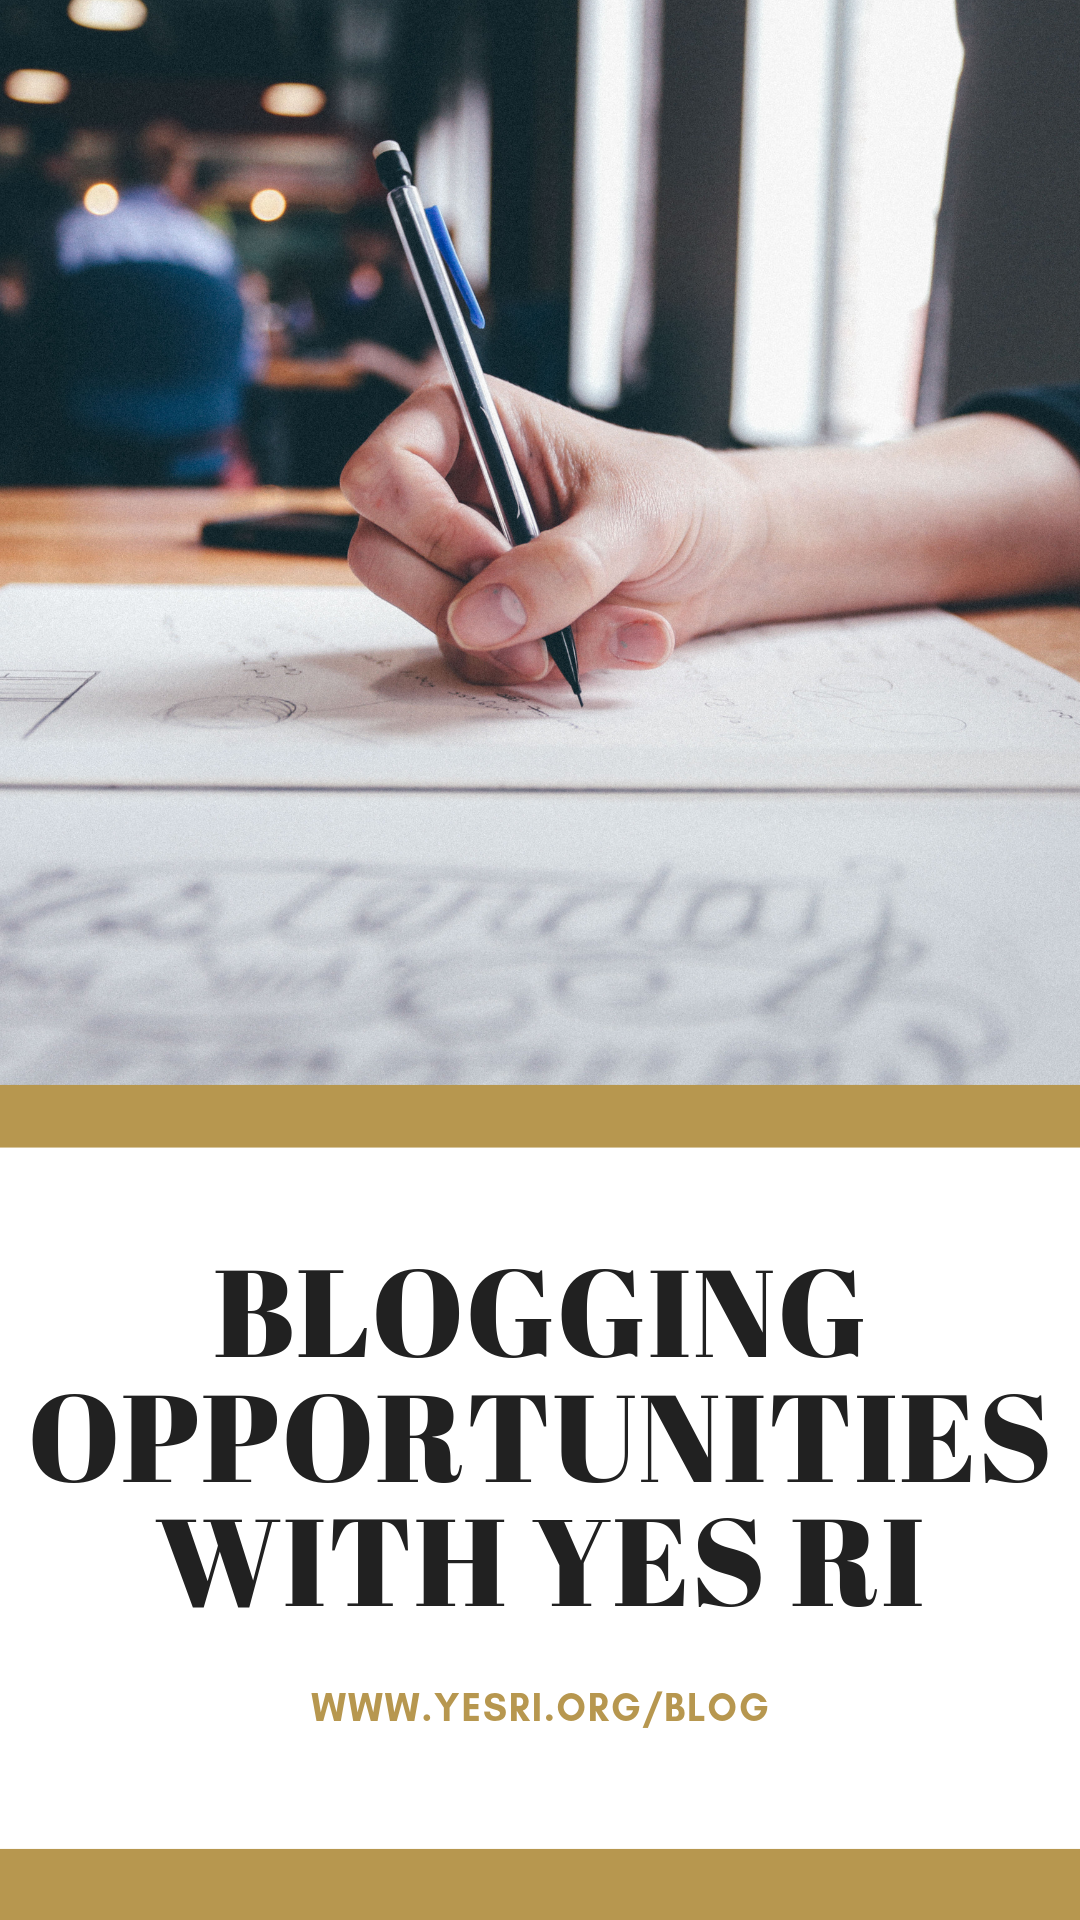 Blogging opportunities with yes ri.png